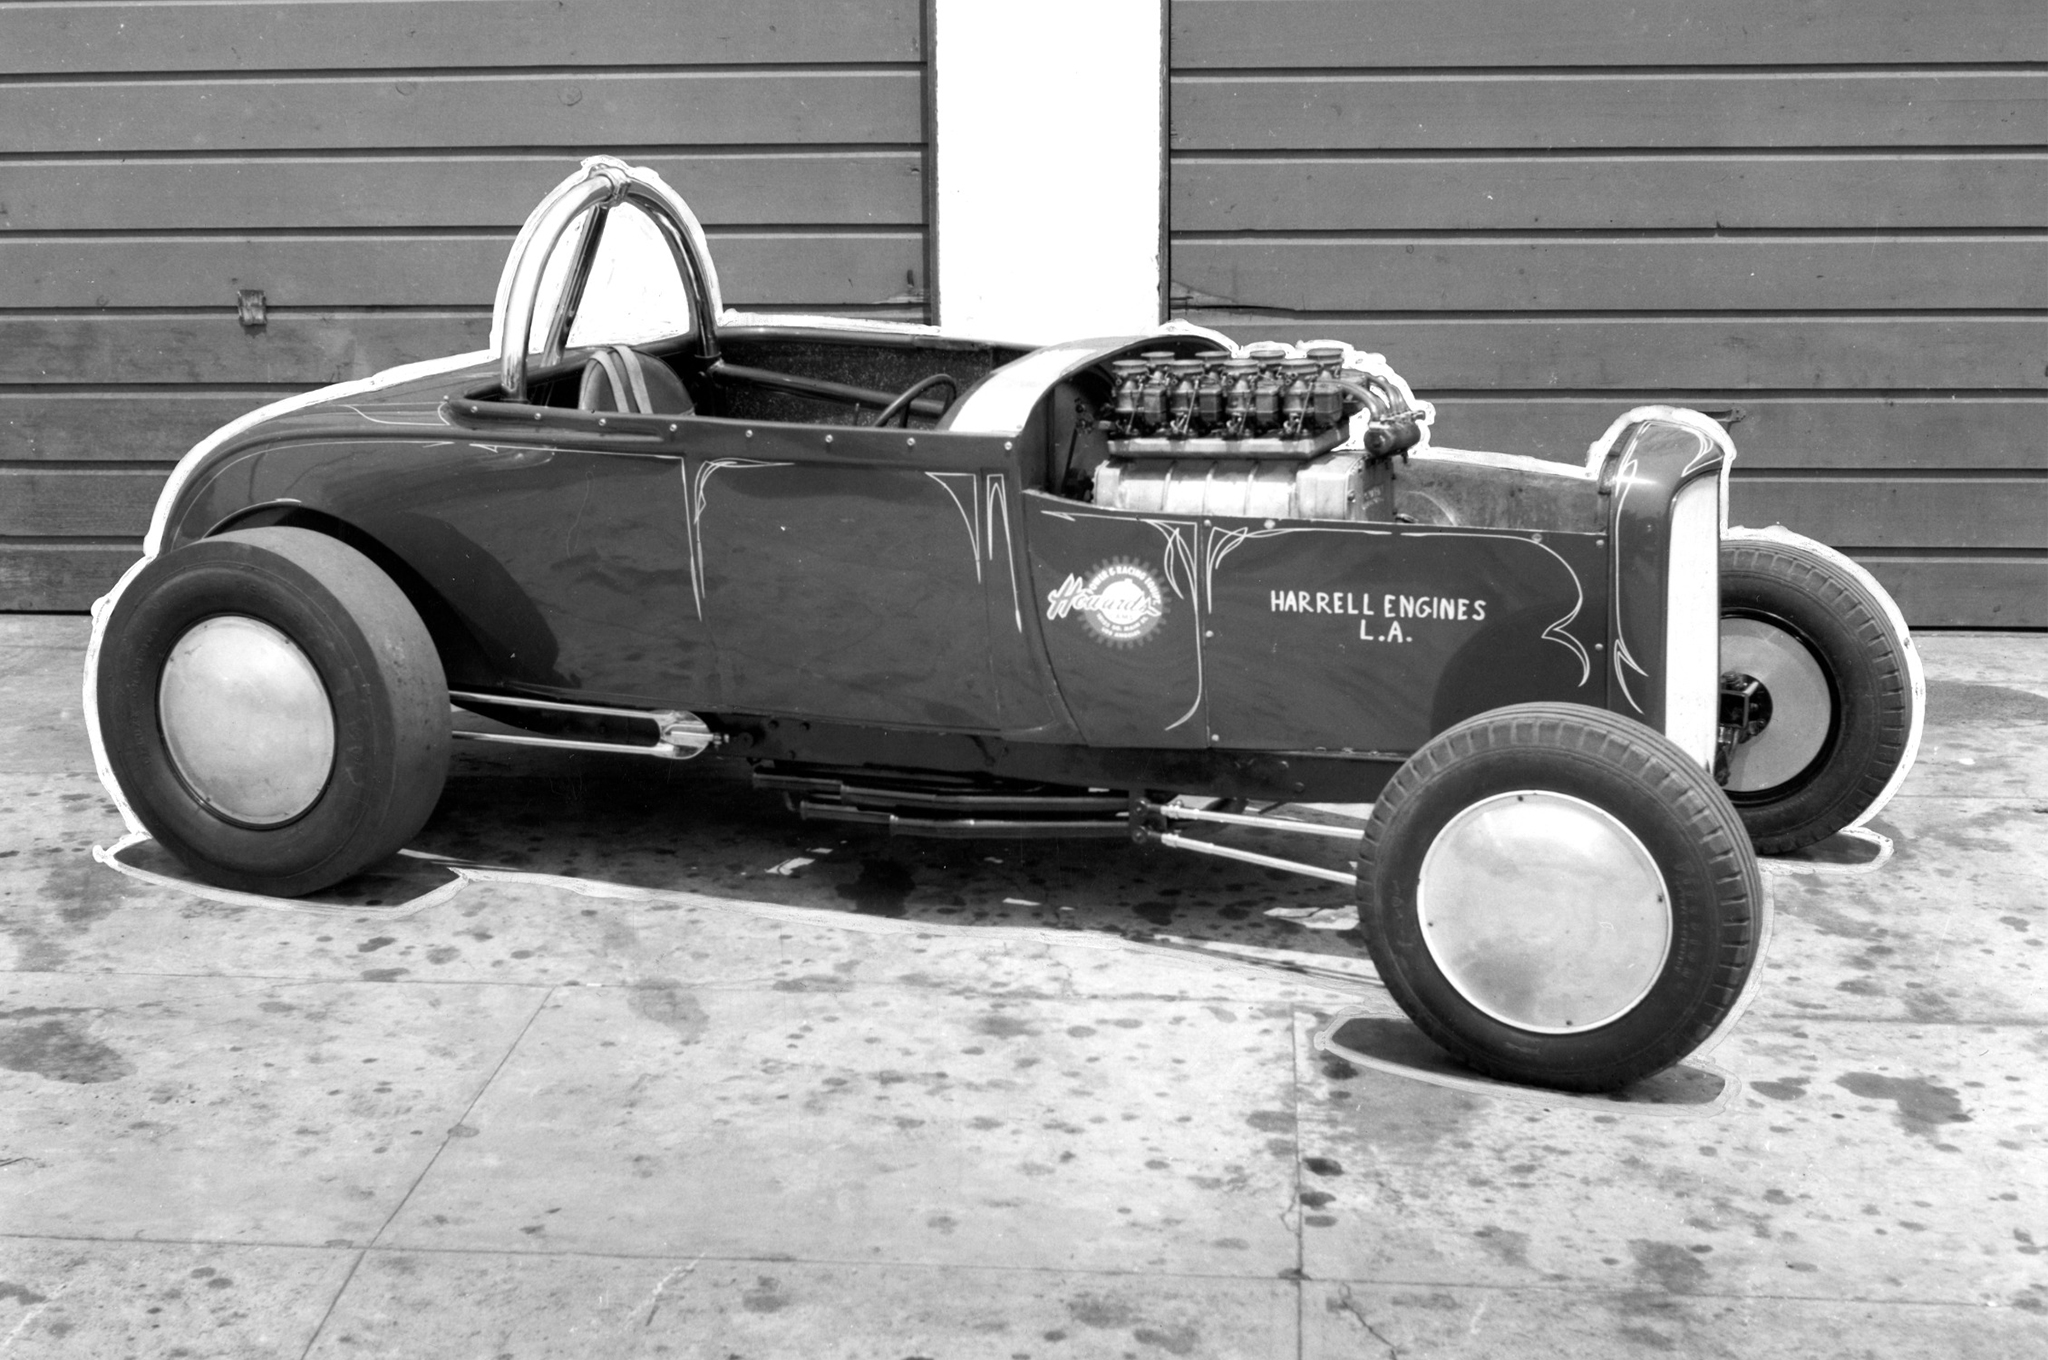 Dave Scott photographed the Harrell Engines' roadster for a story in the July 1960 issue of HRM. It was a 144-mph record run at Lions that got the magazine's attention and earned the Harrells a feature on the car.